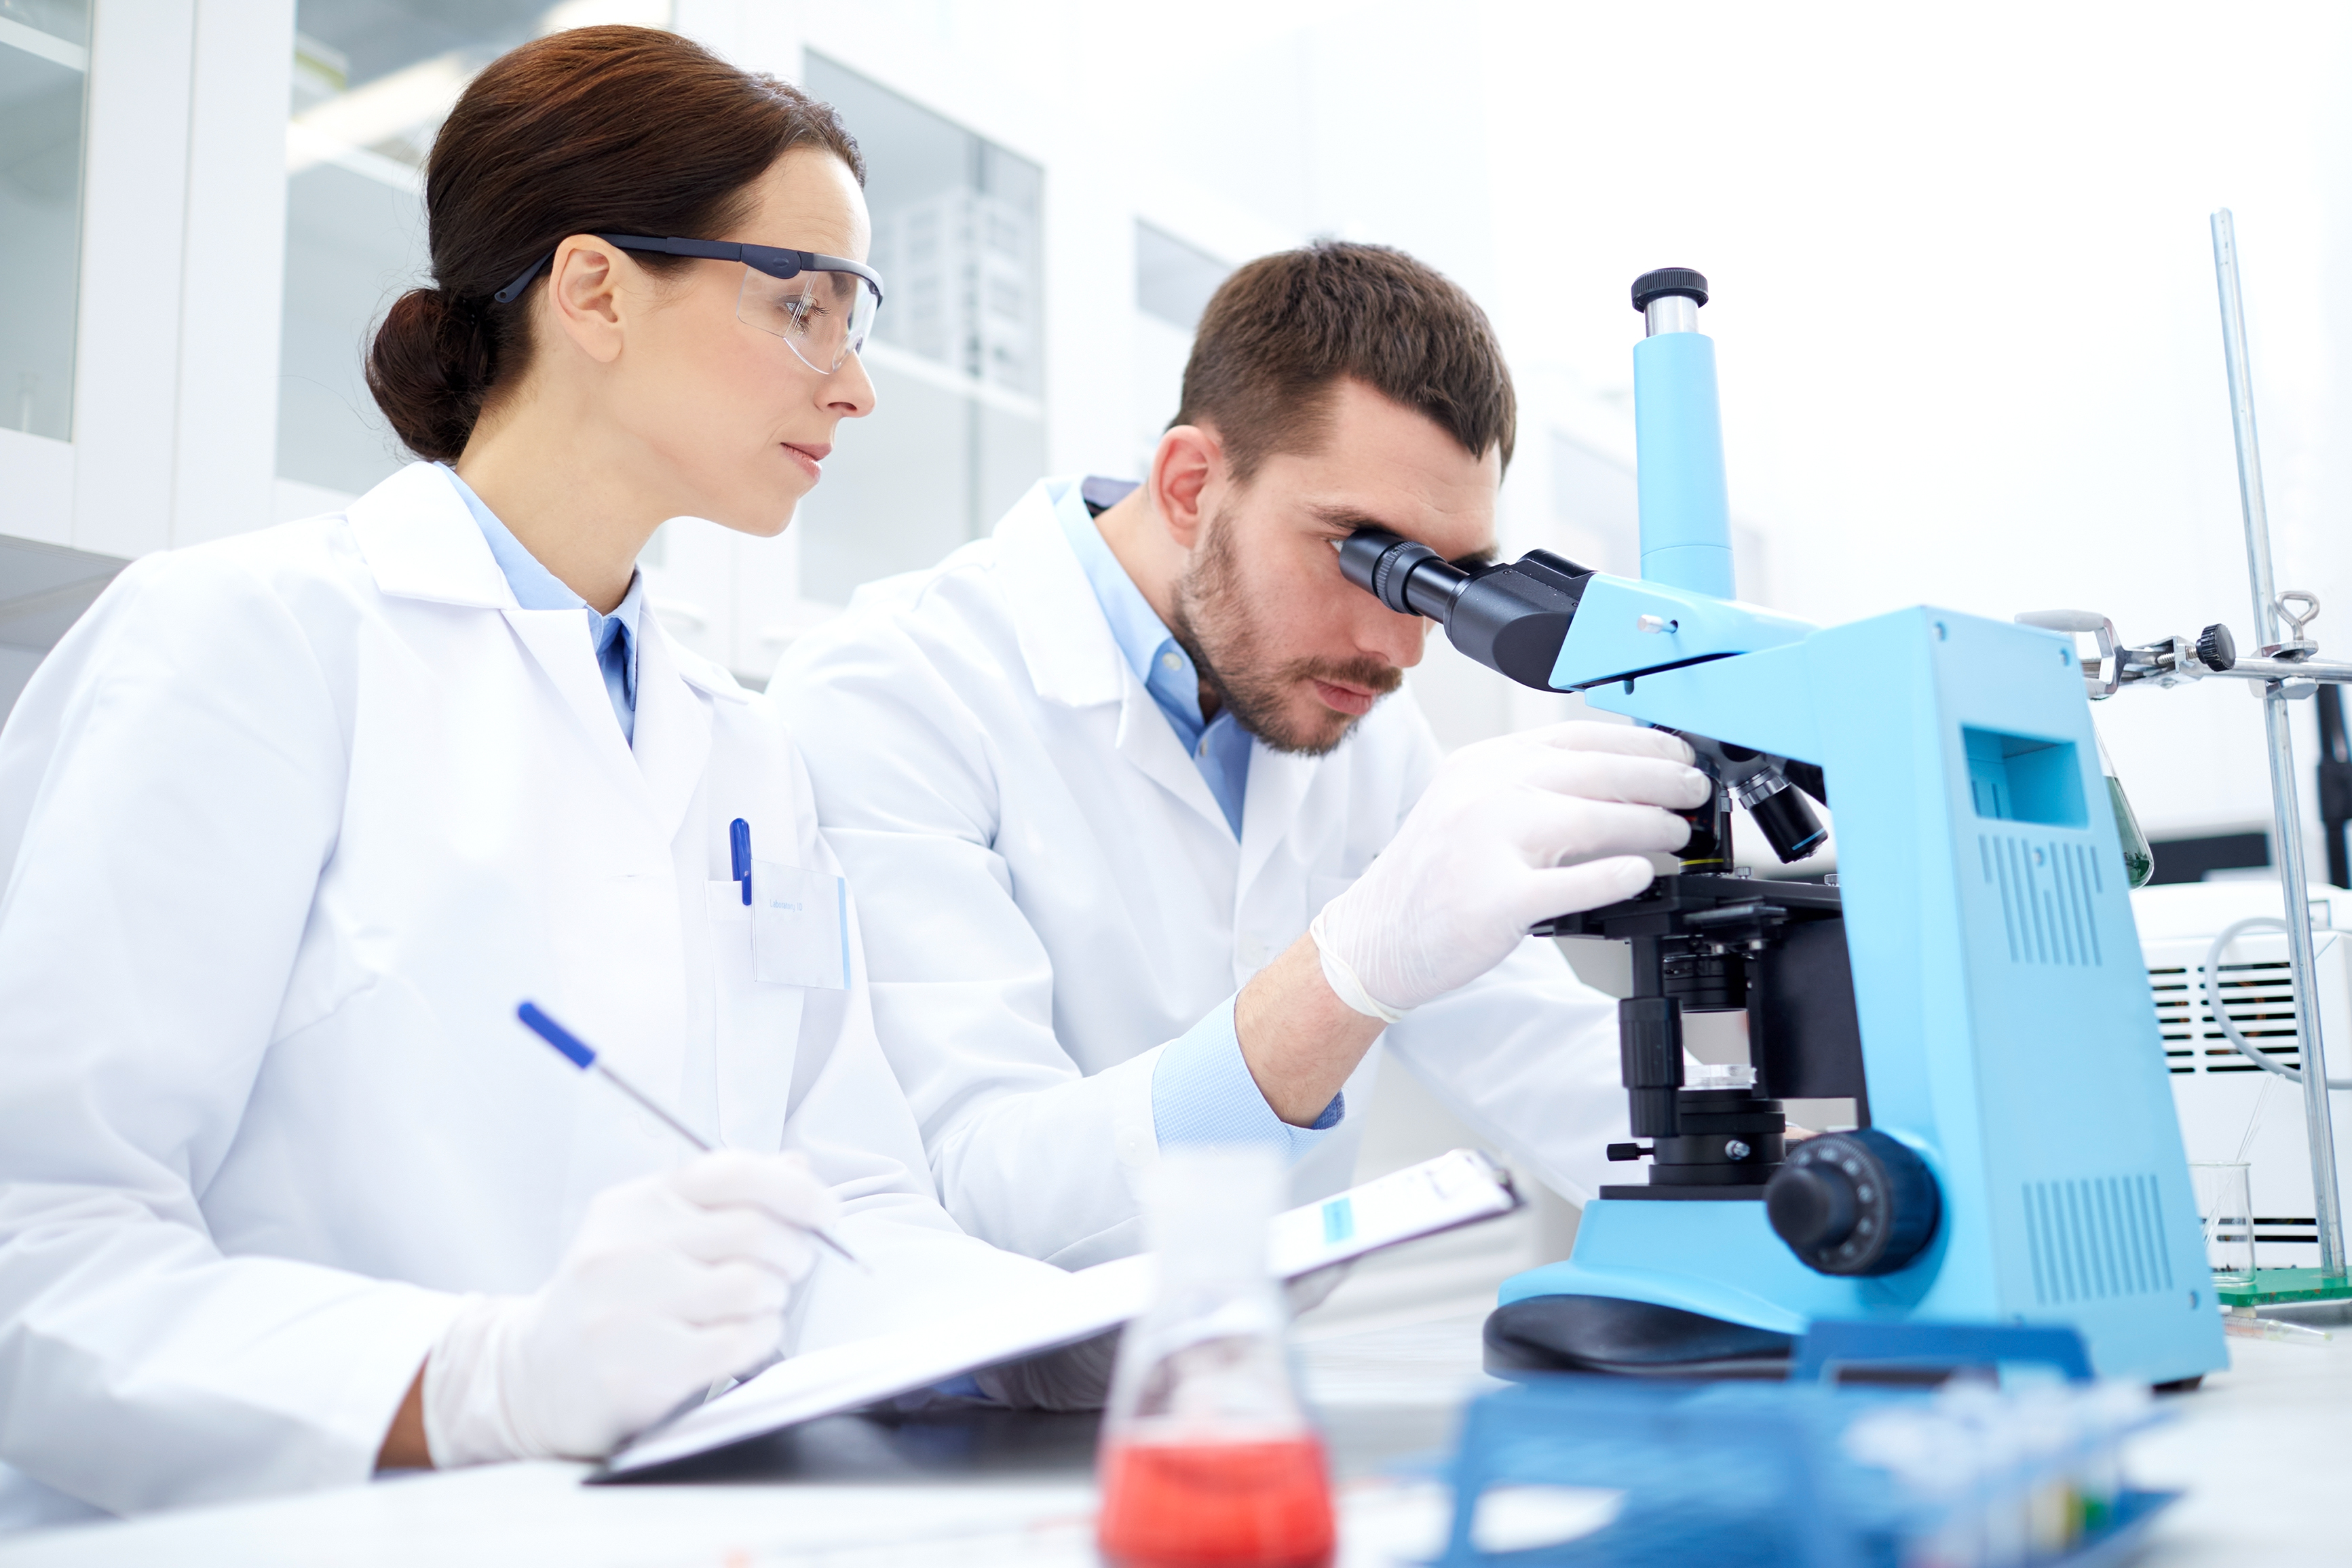 New Potential Therapeutic Strategy for Endometriosis Based on Retinoic Acid